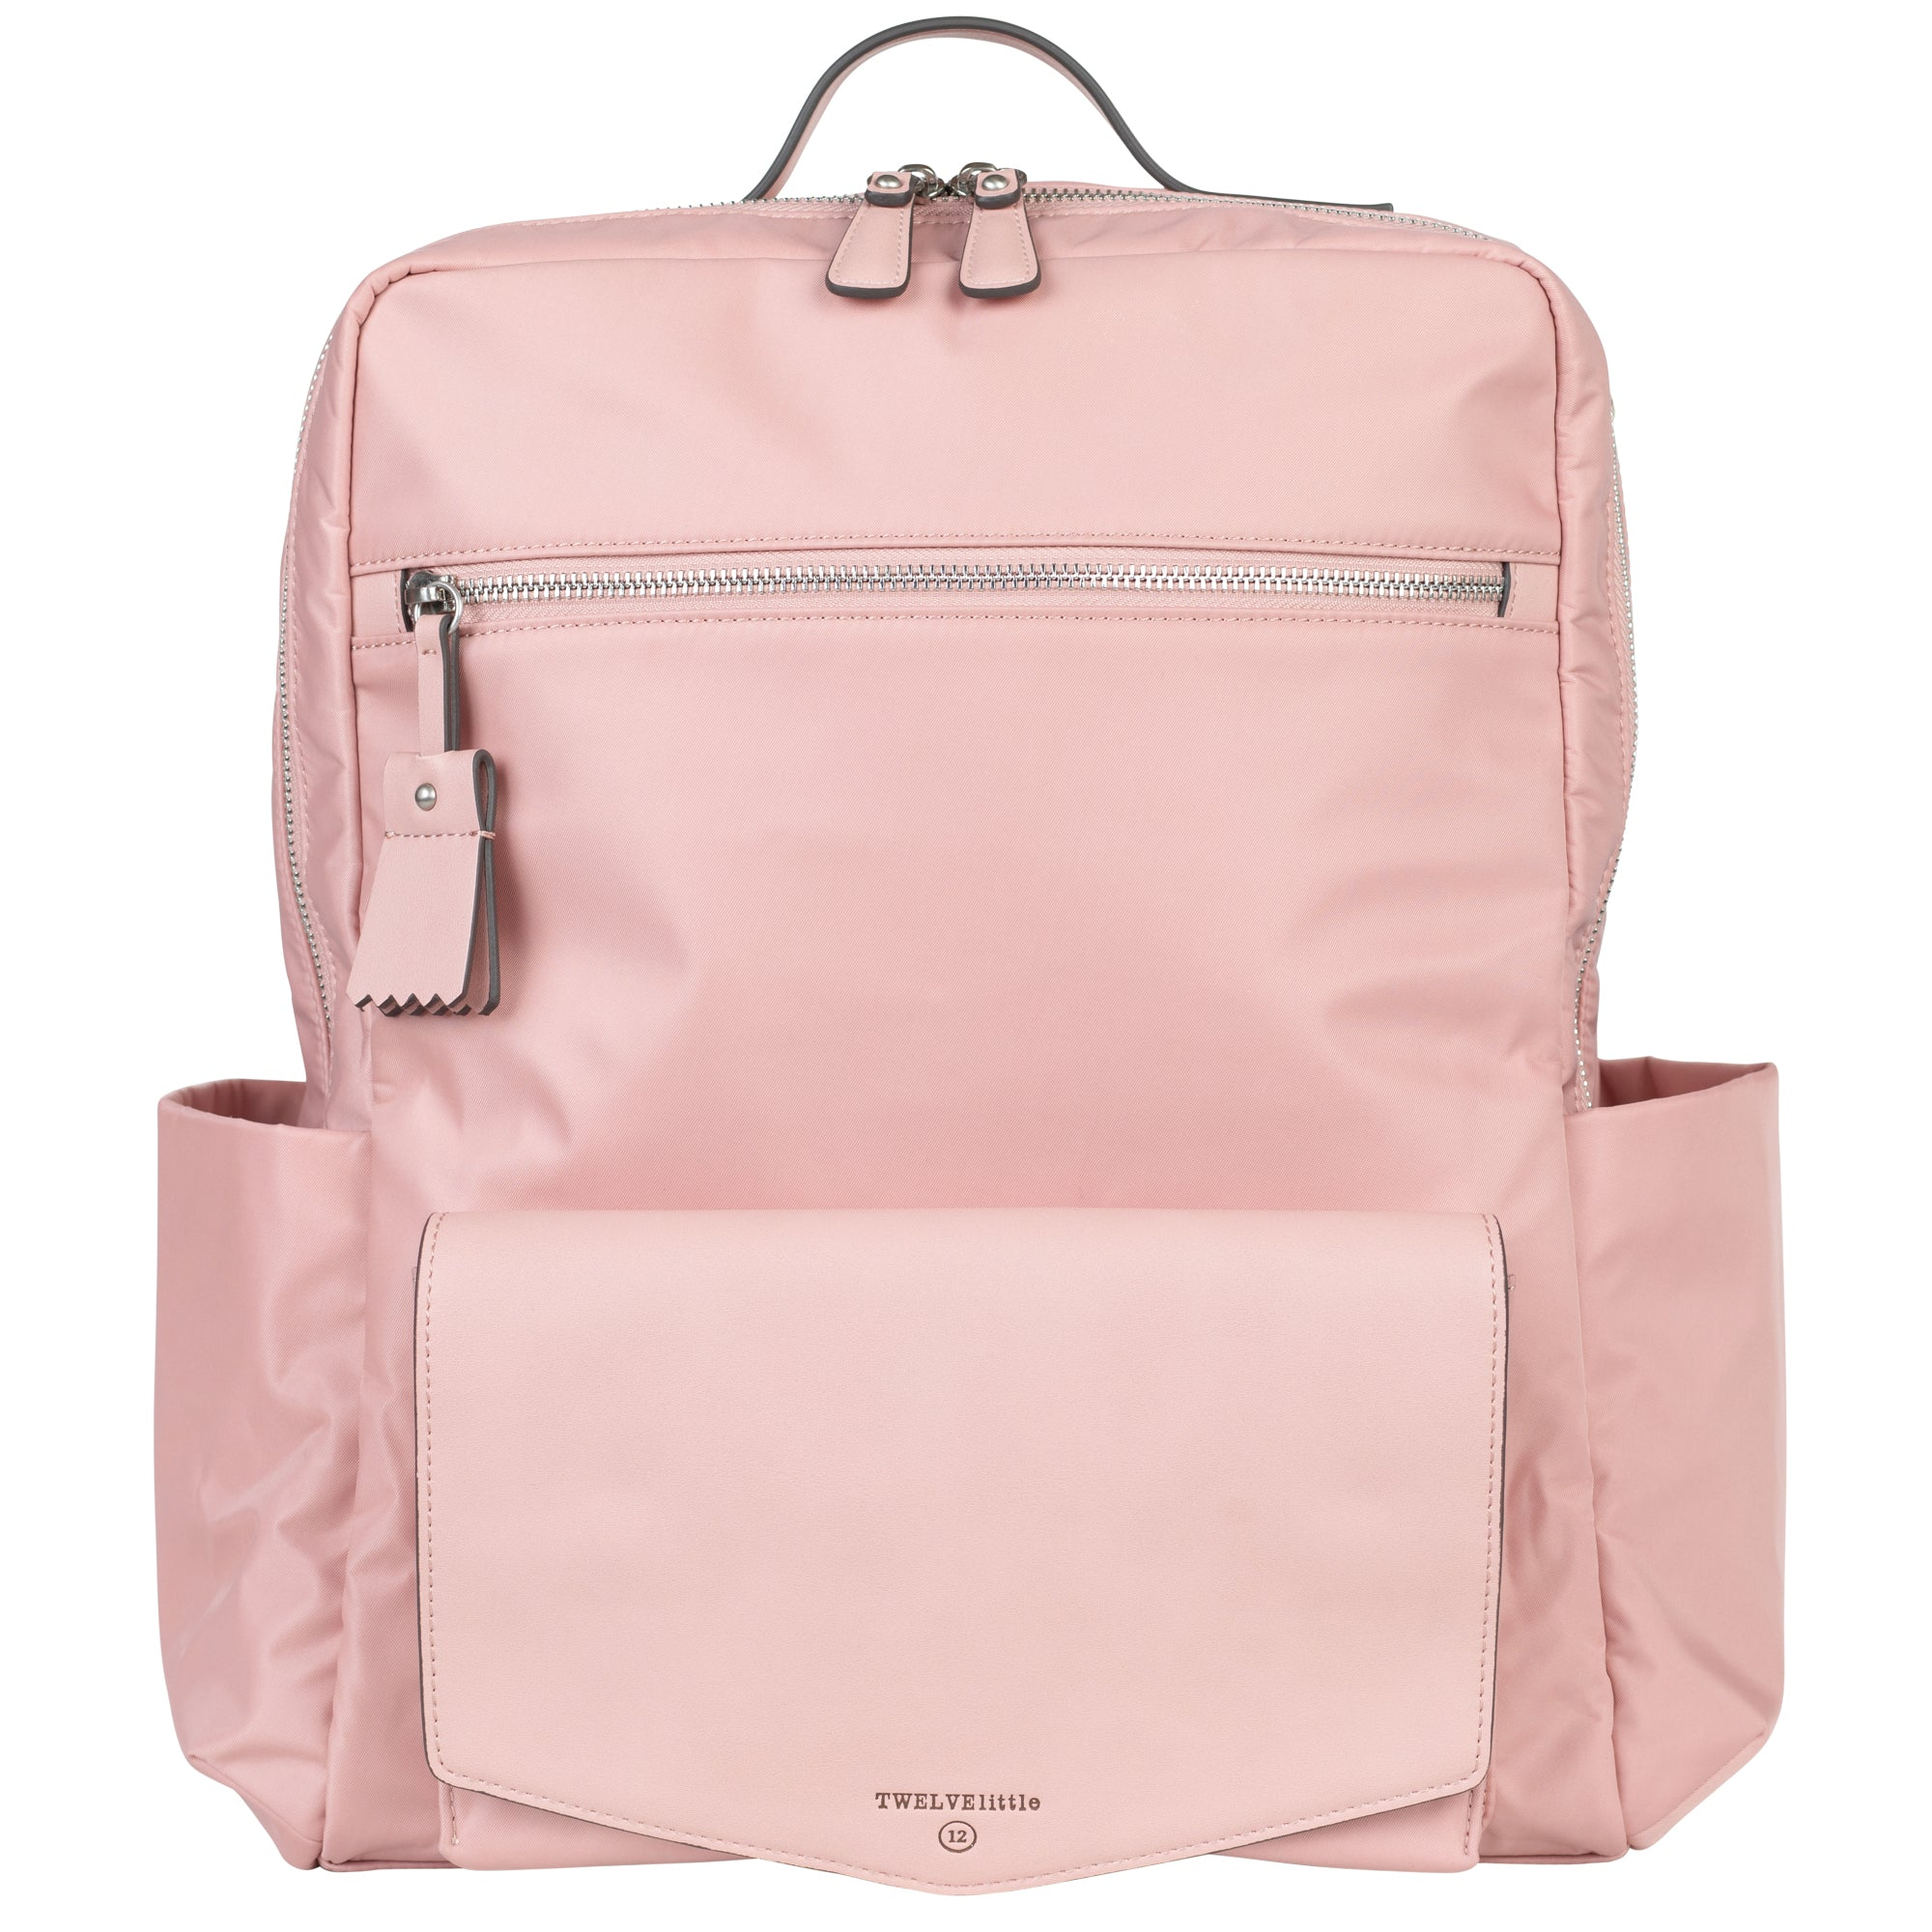 Peek-a-Boo Backpack Diaper Bag - Pink - Project Nursery